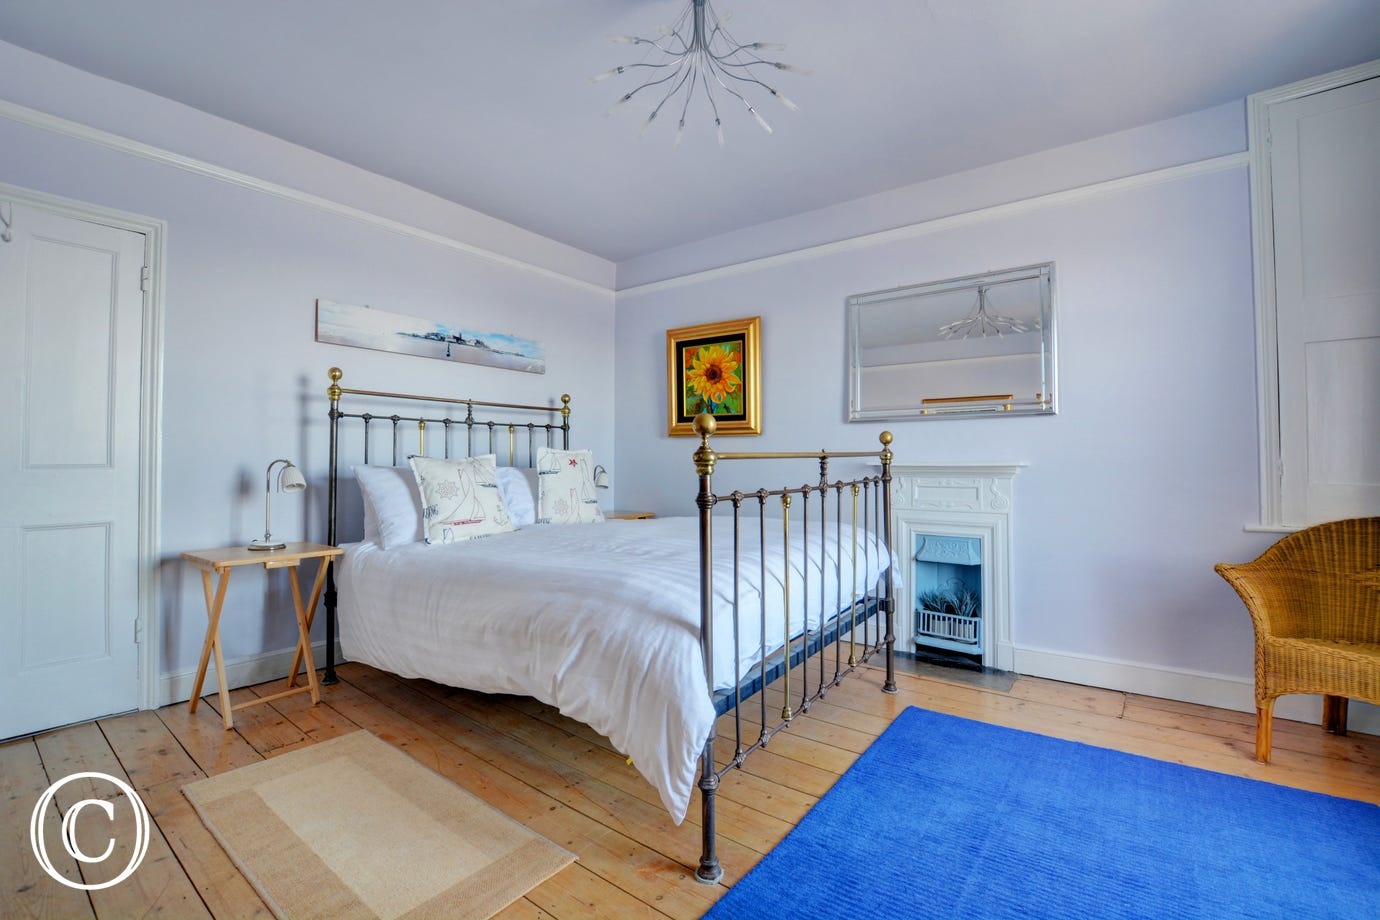 Bedroom 3 features a double iron bedstead and pretty fireplace and coastal art.